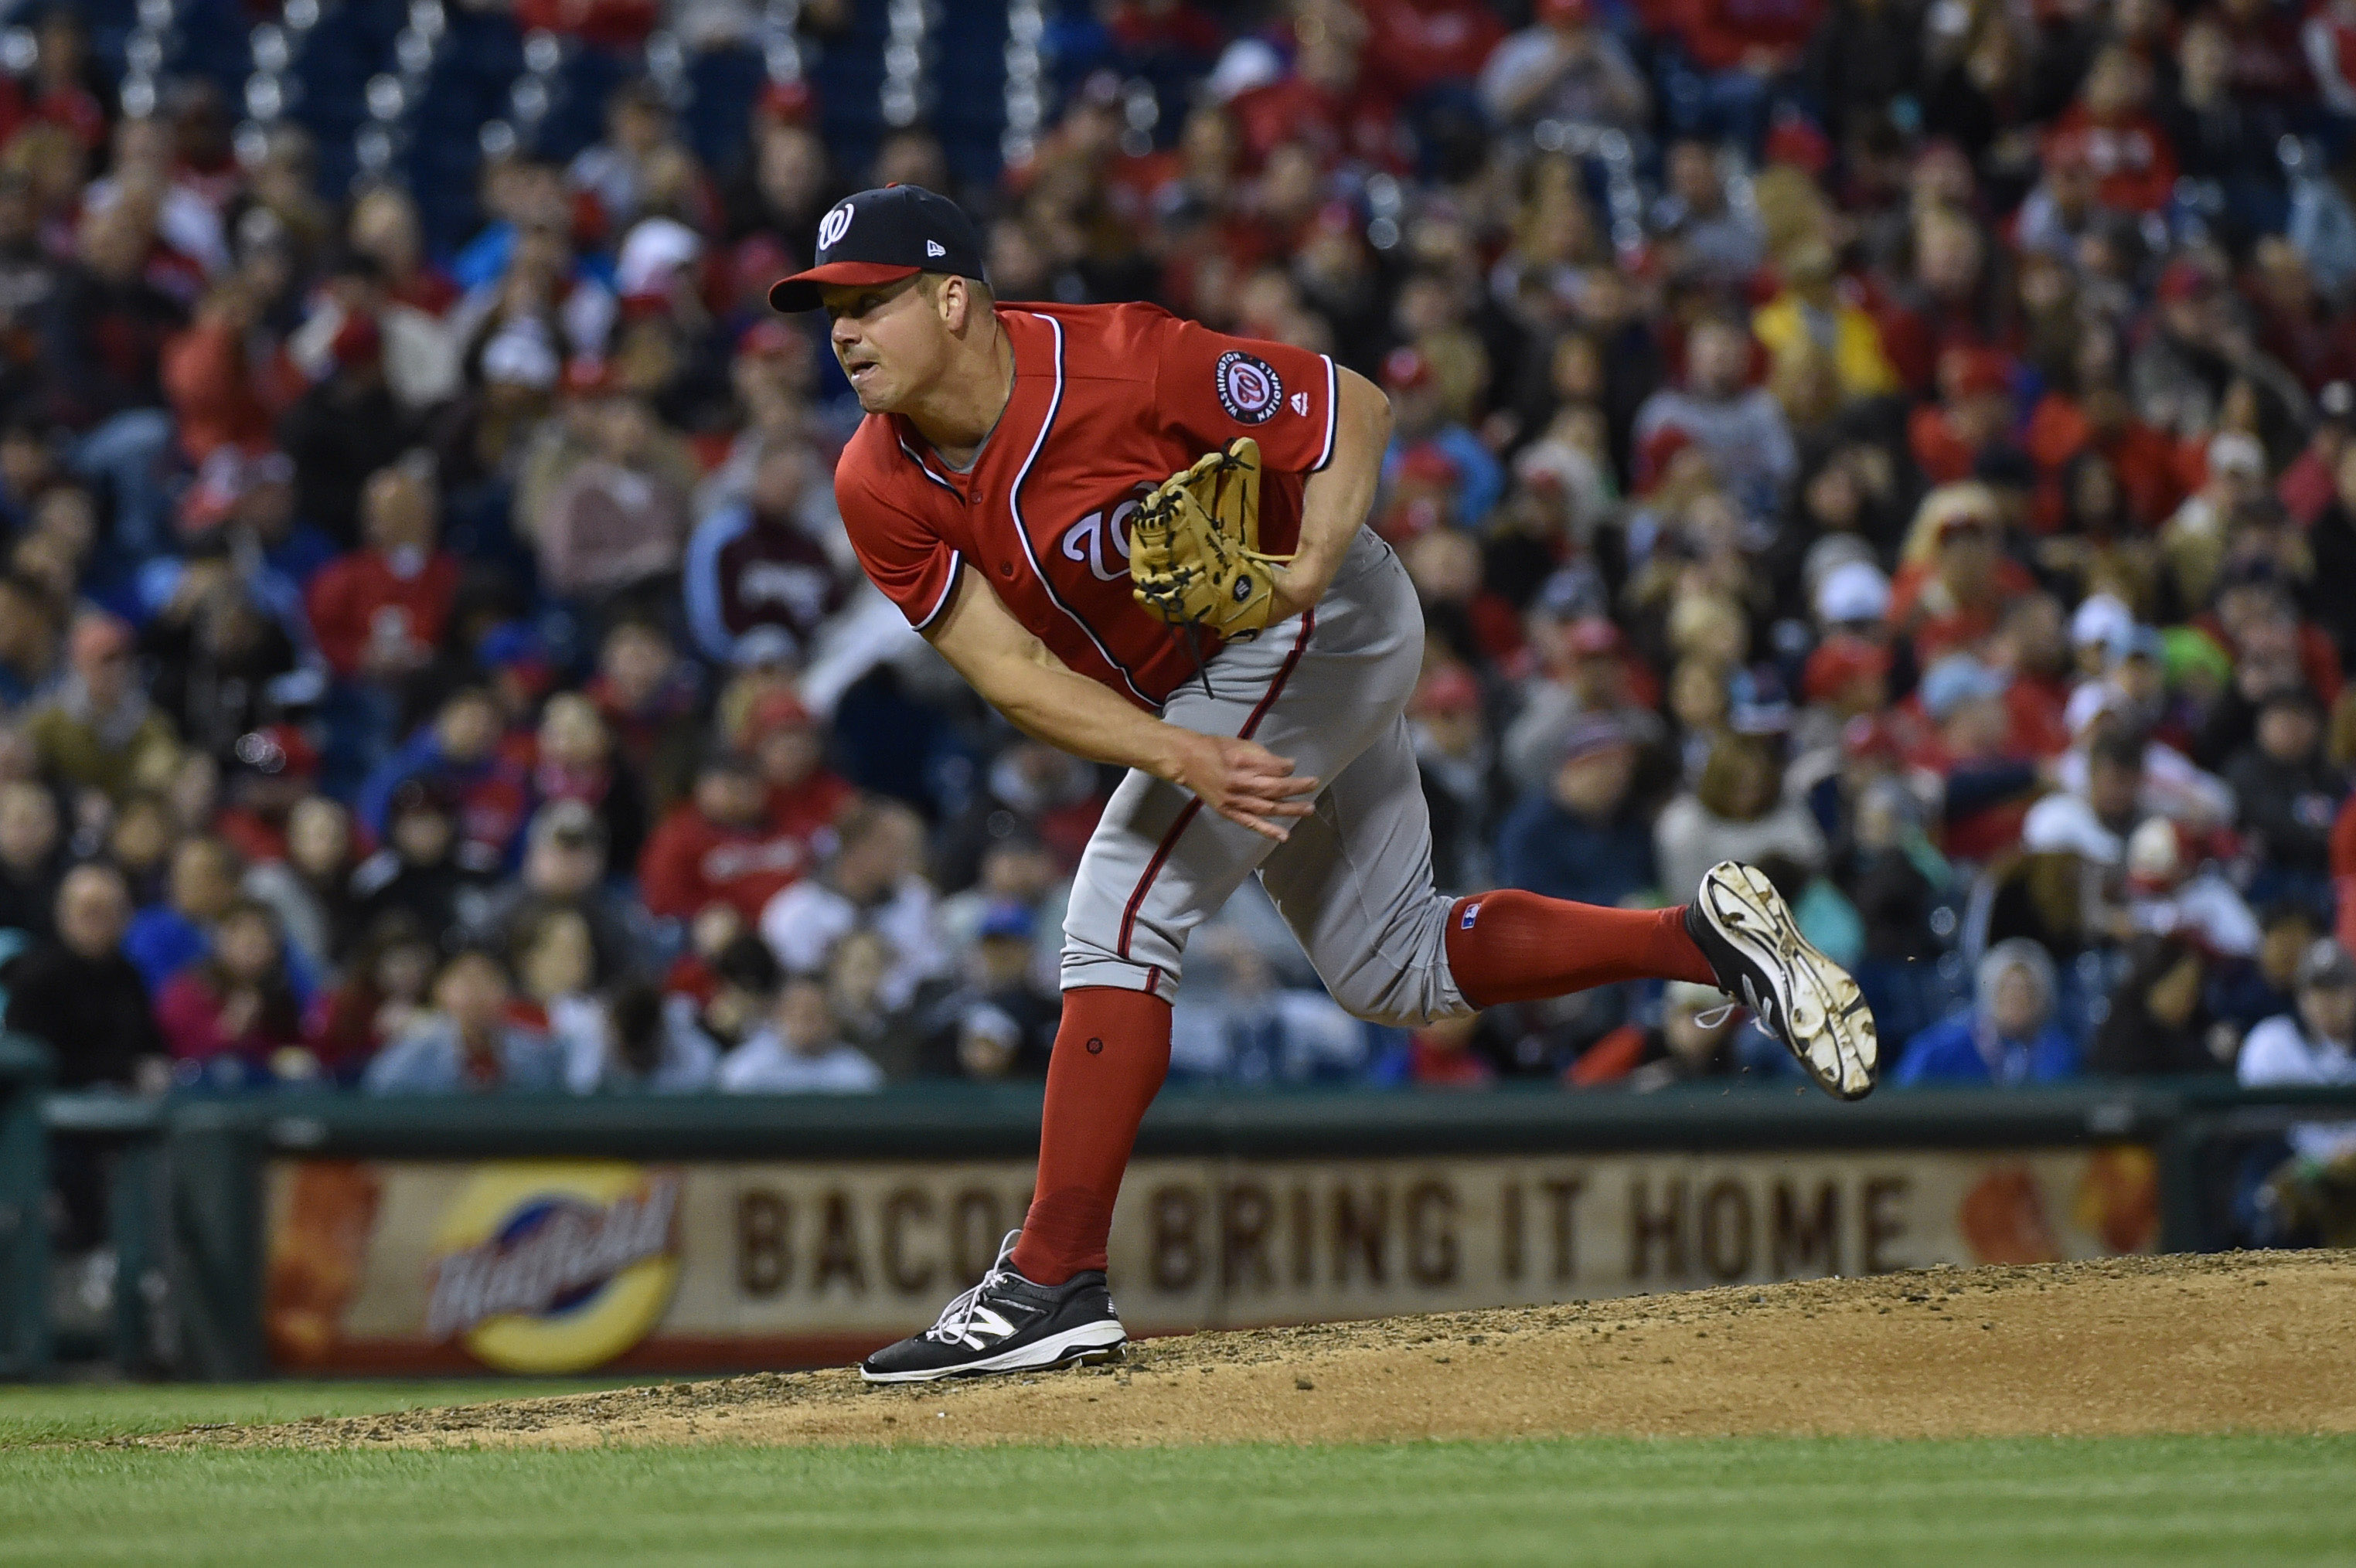 Leake, Piscotty lead Cardinals past Nationals, 6-1